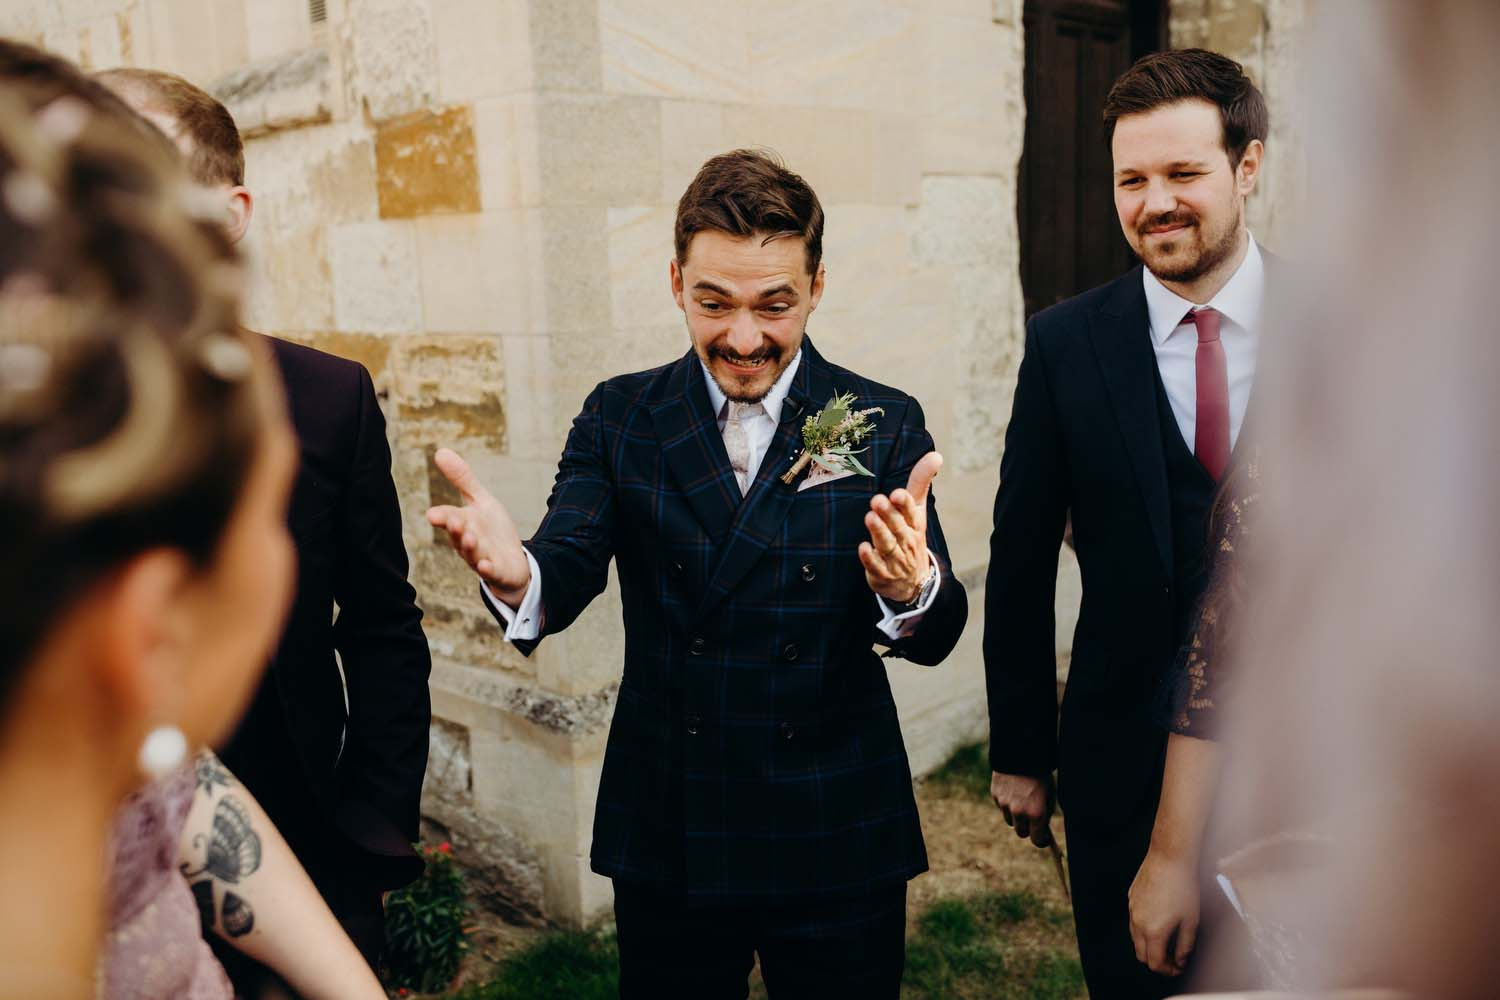 Groom ecstatic over bride